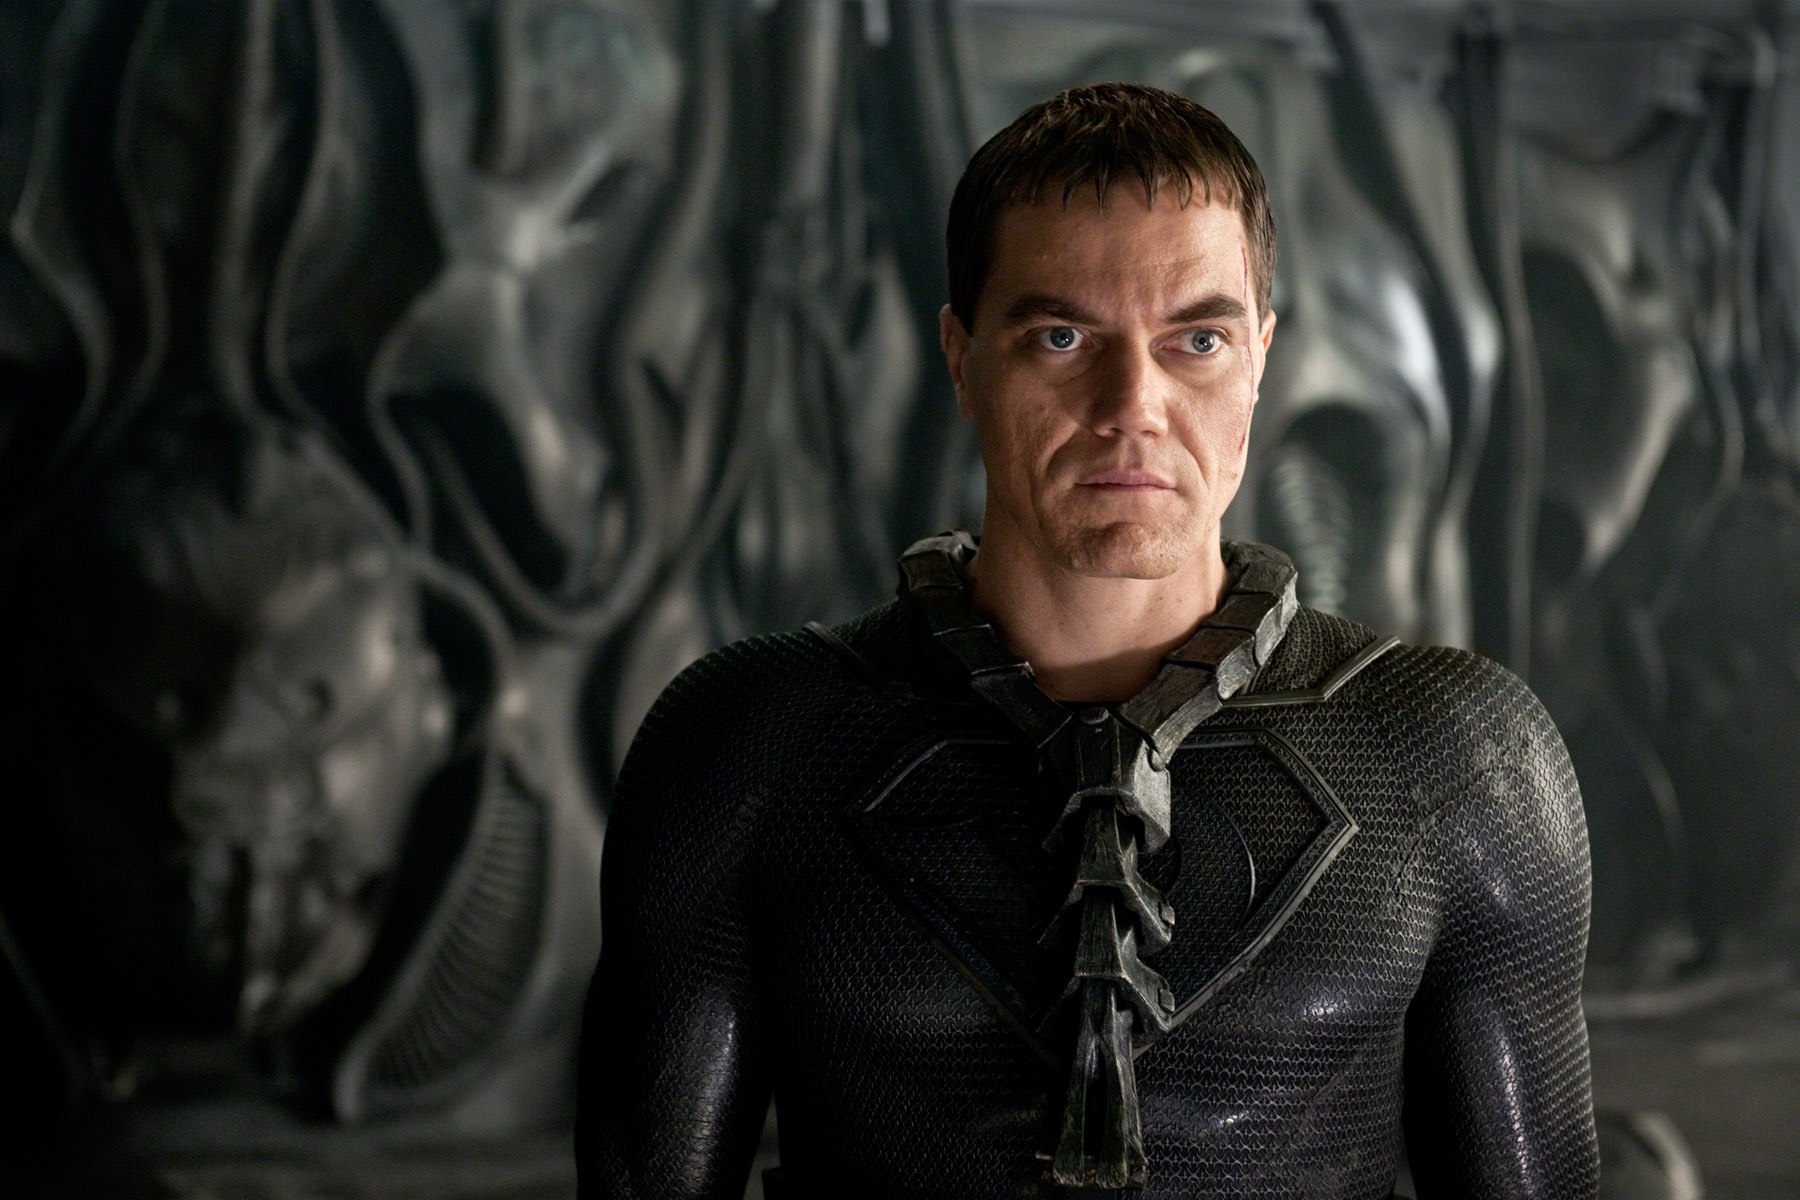 Michael Shannon as General Zod in Man of Steel. Warner Bros.